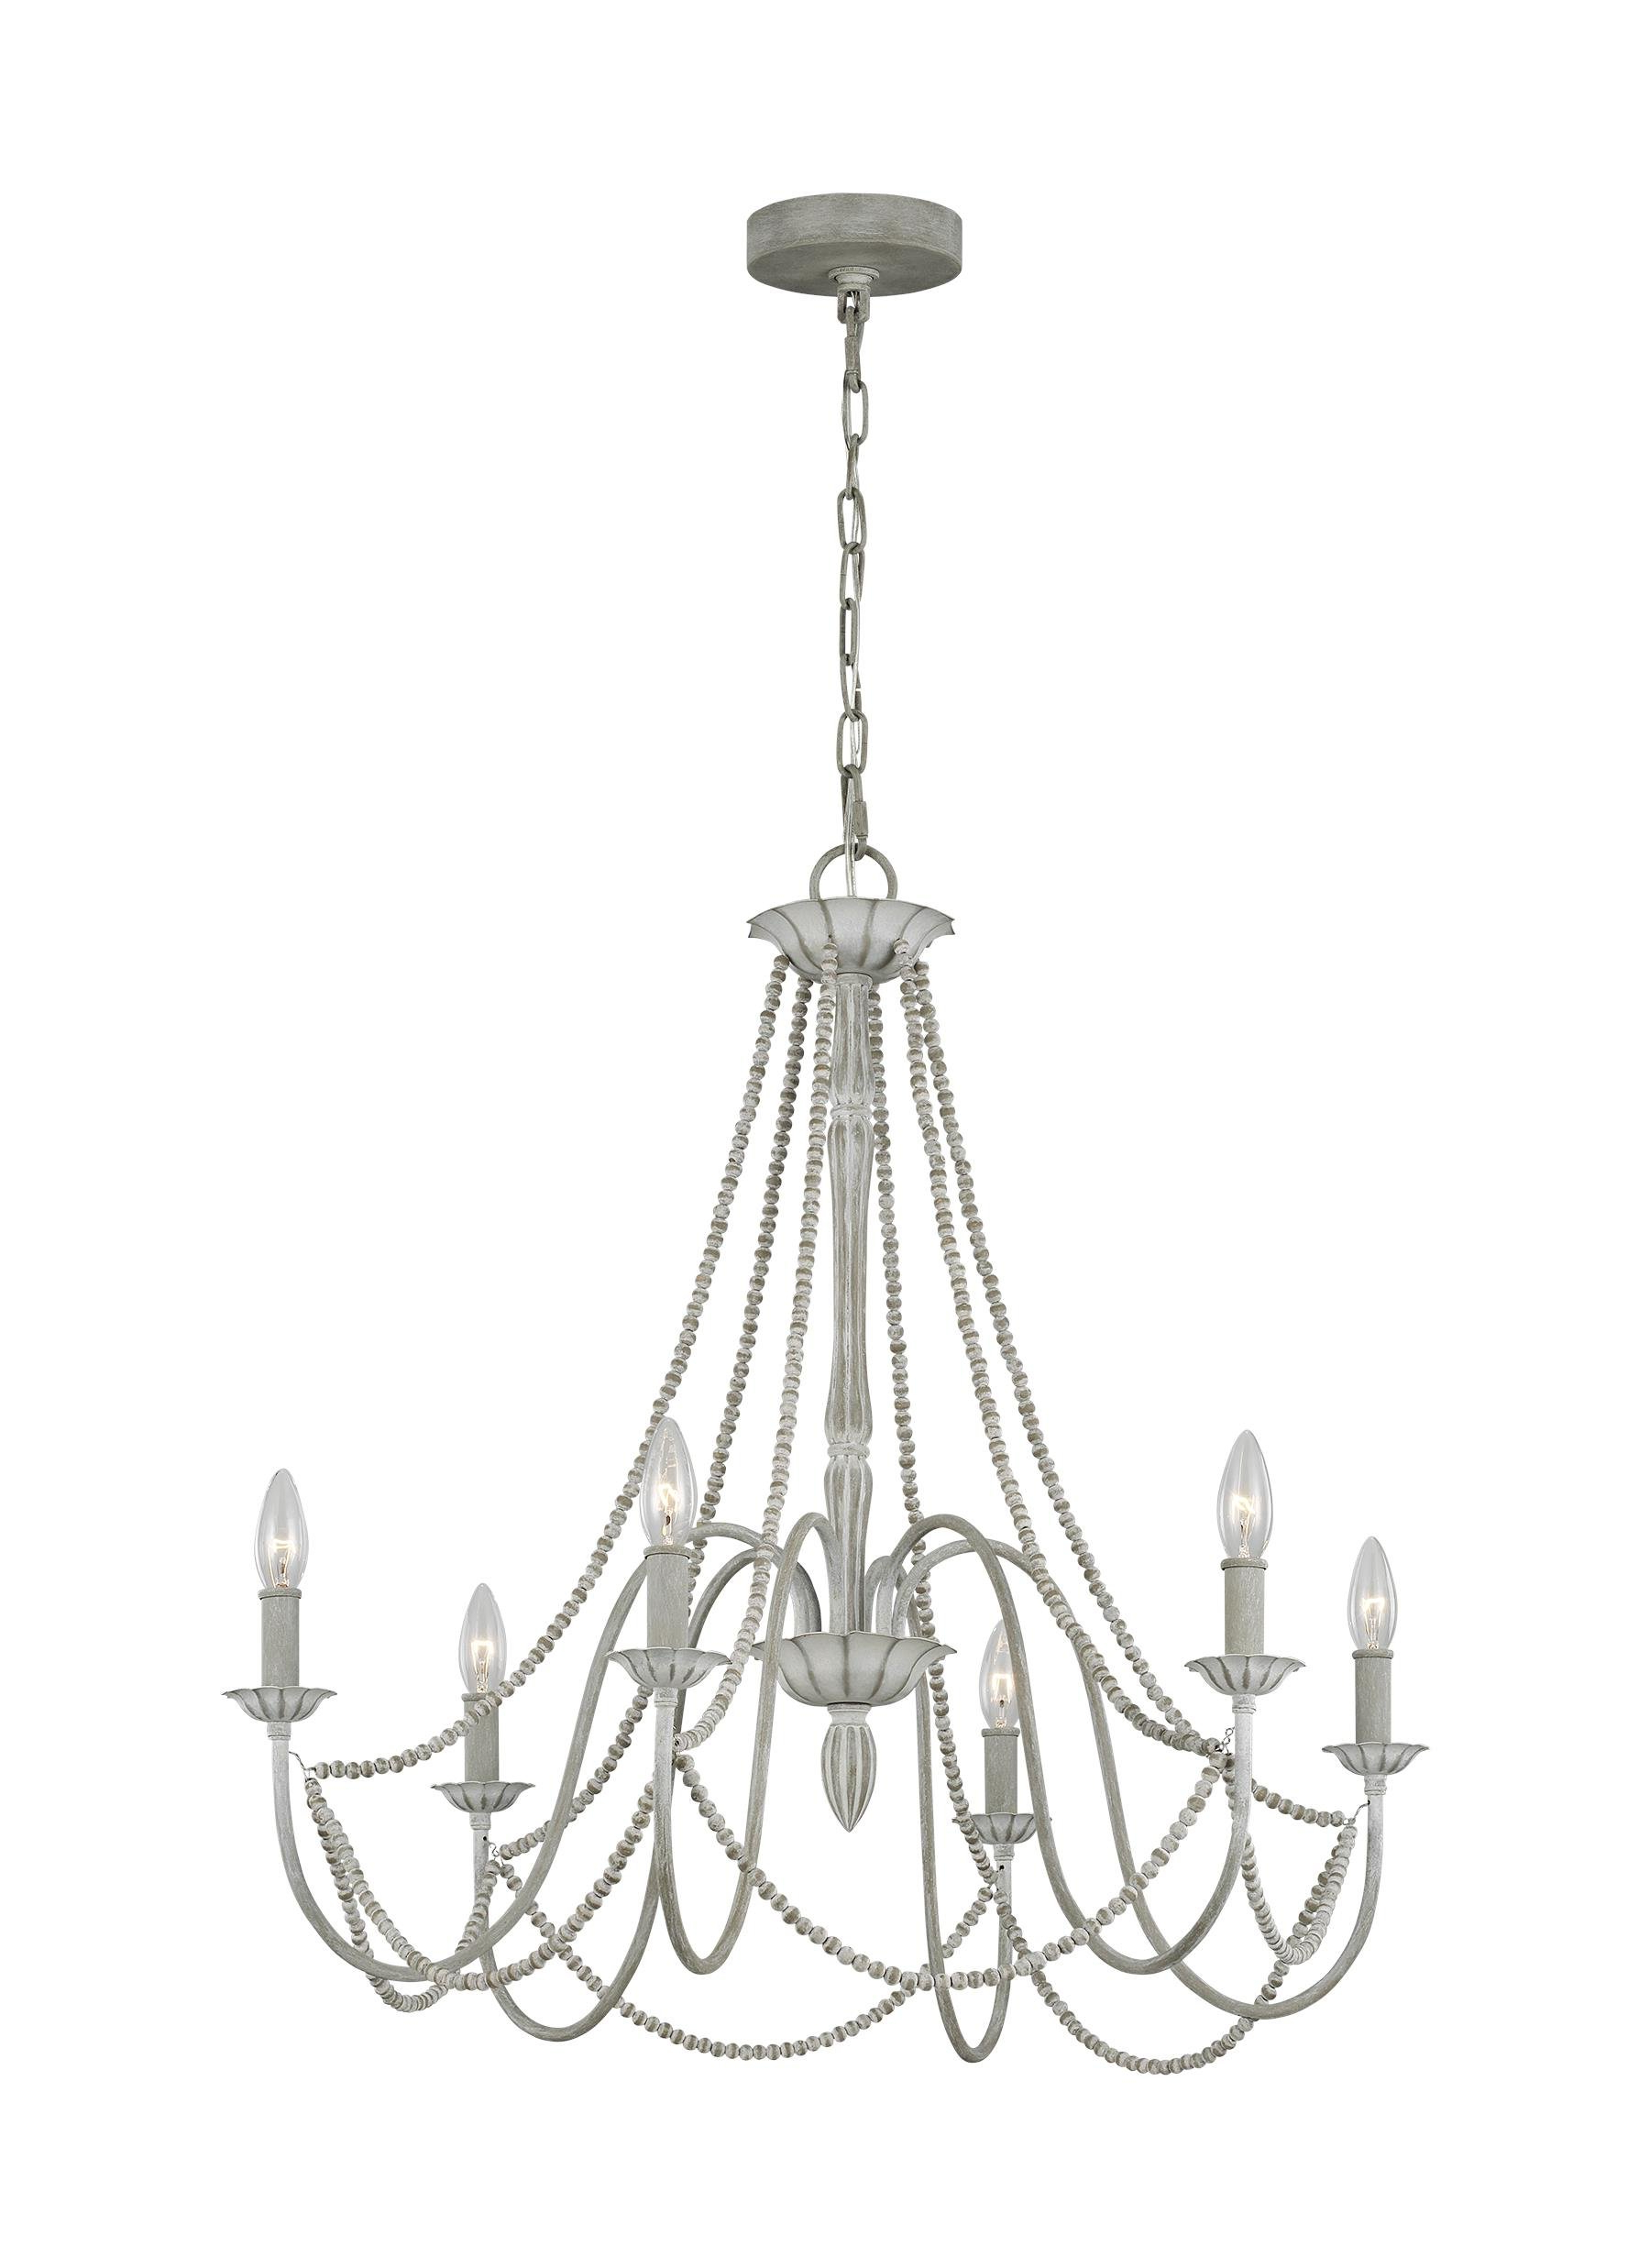 Fashionable Caufield 6 Light Candle Style Chandelier Regarding Diaz 6 Light Candle Style Chandeliers (View 17 of 25)